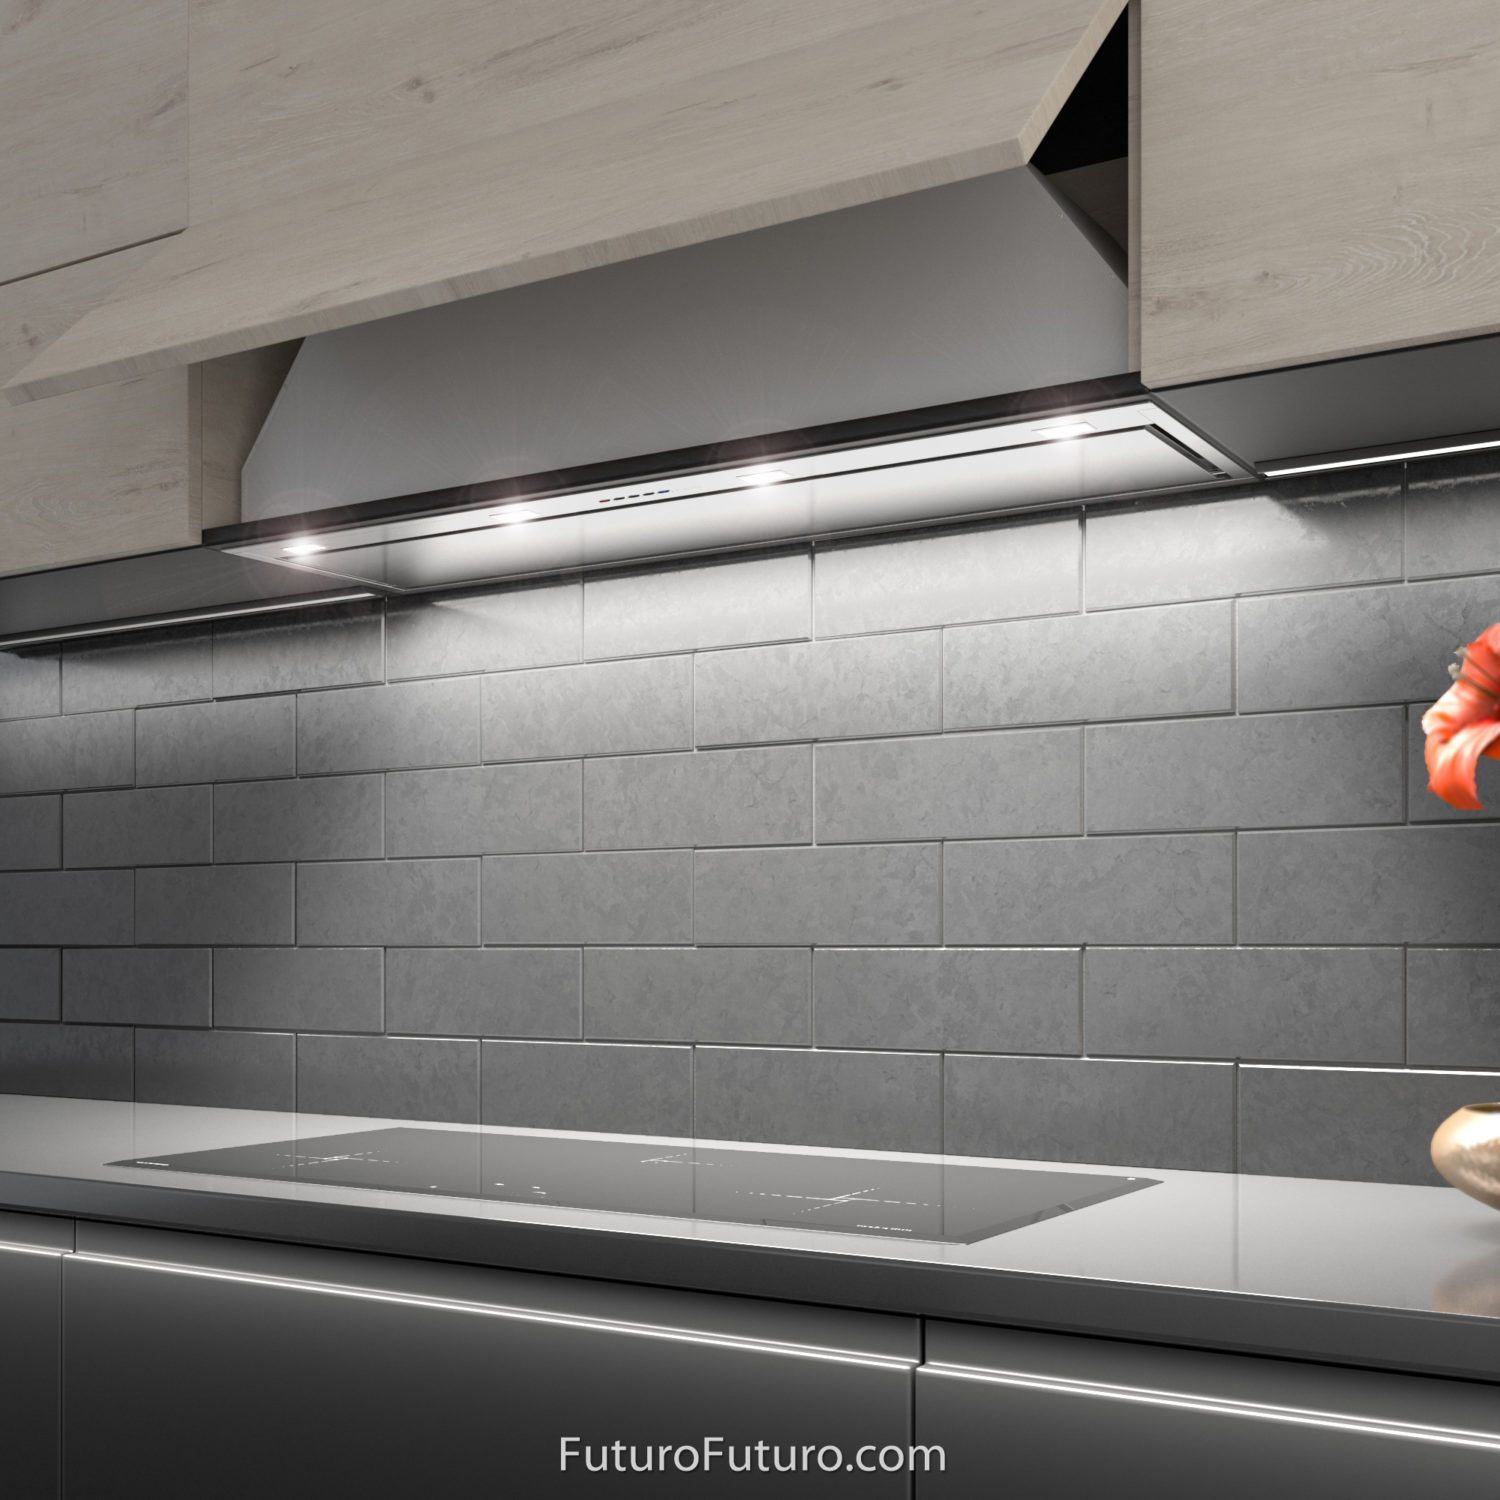 42 Insert Liner Wall The Perfect Ventilation Solution For Custom Cabinetry A Complete Range Hood Insert With In Range Hood Custom Cabinetry Kitchen Hoods